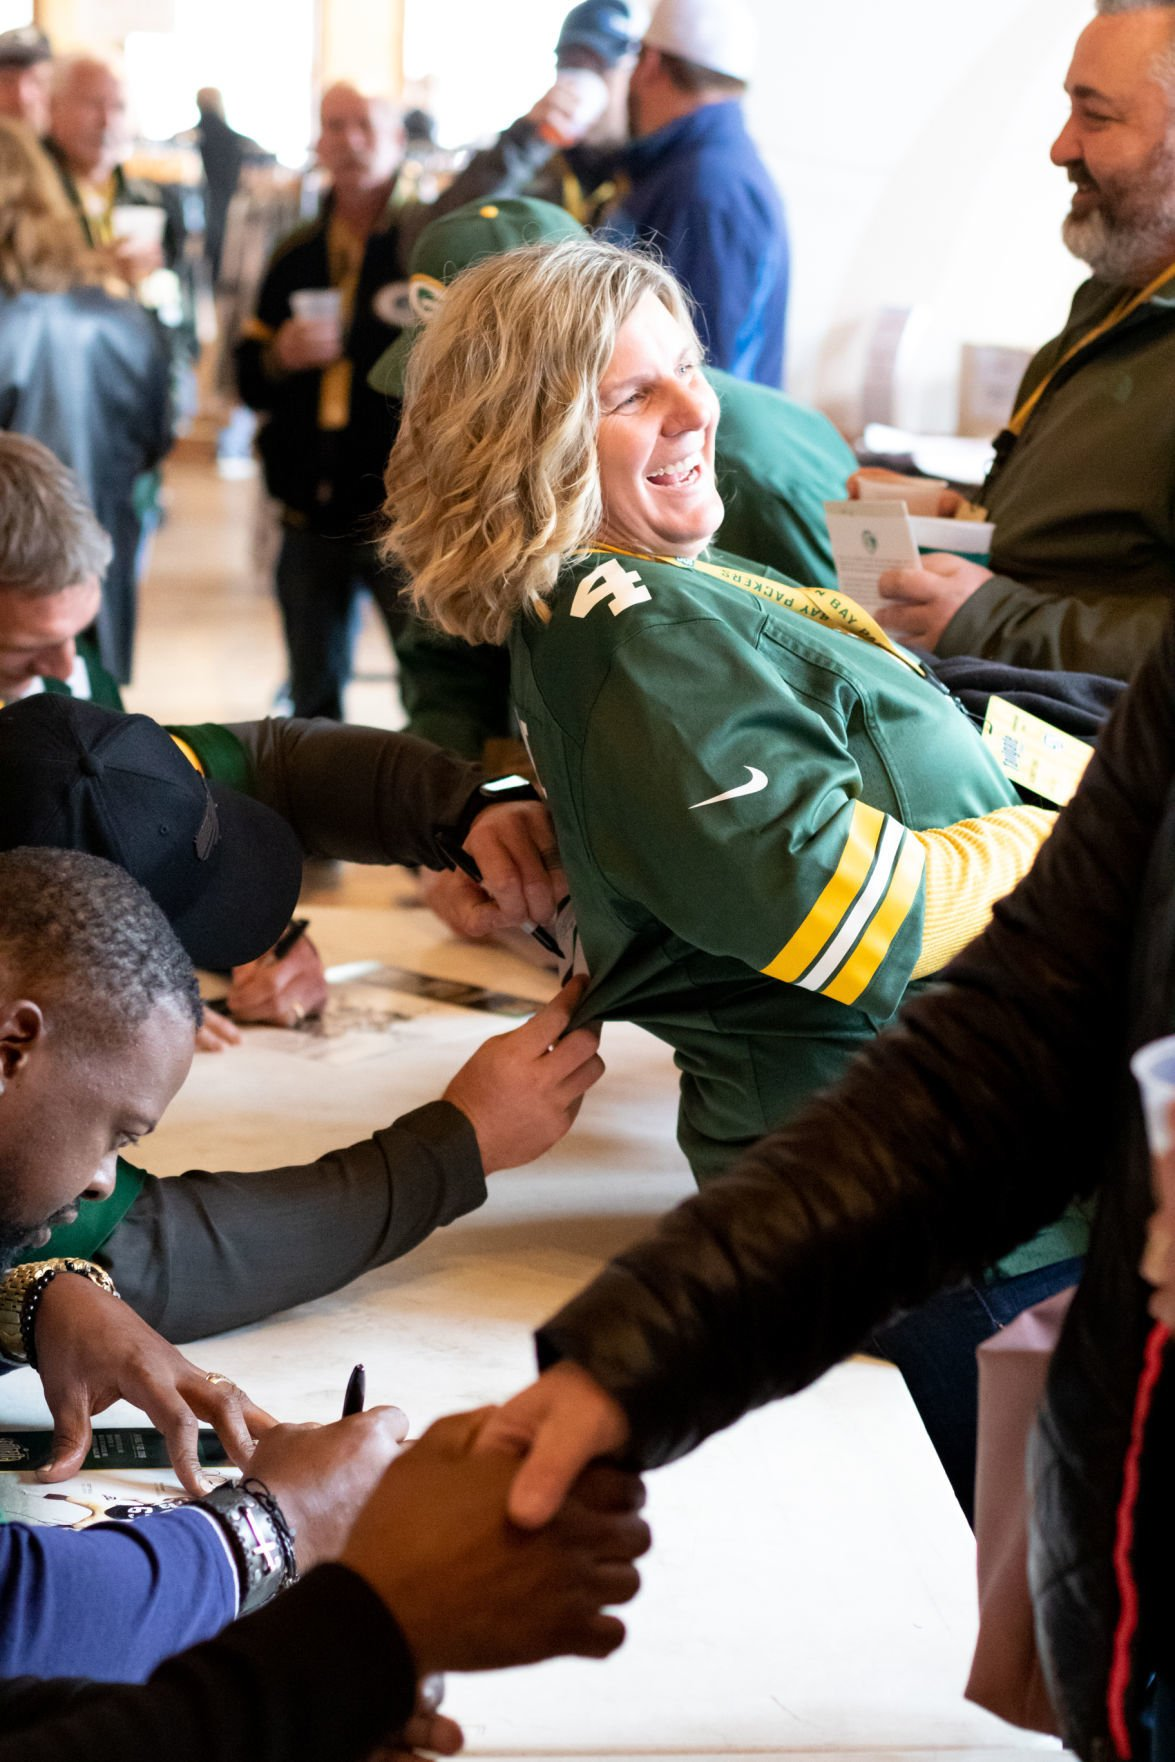 041319_con_packers_2